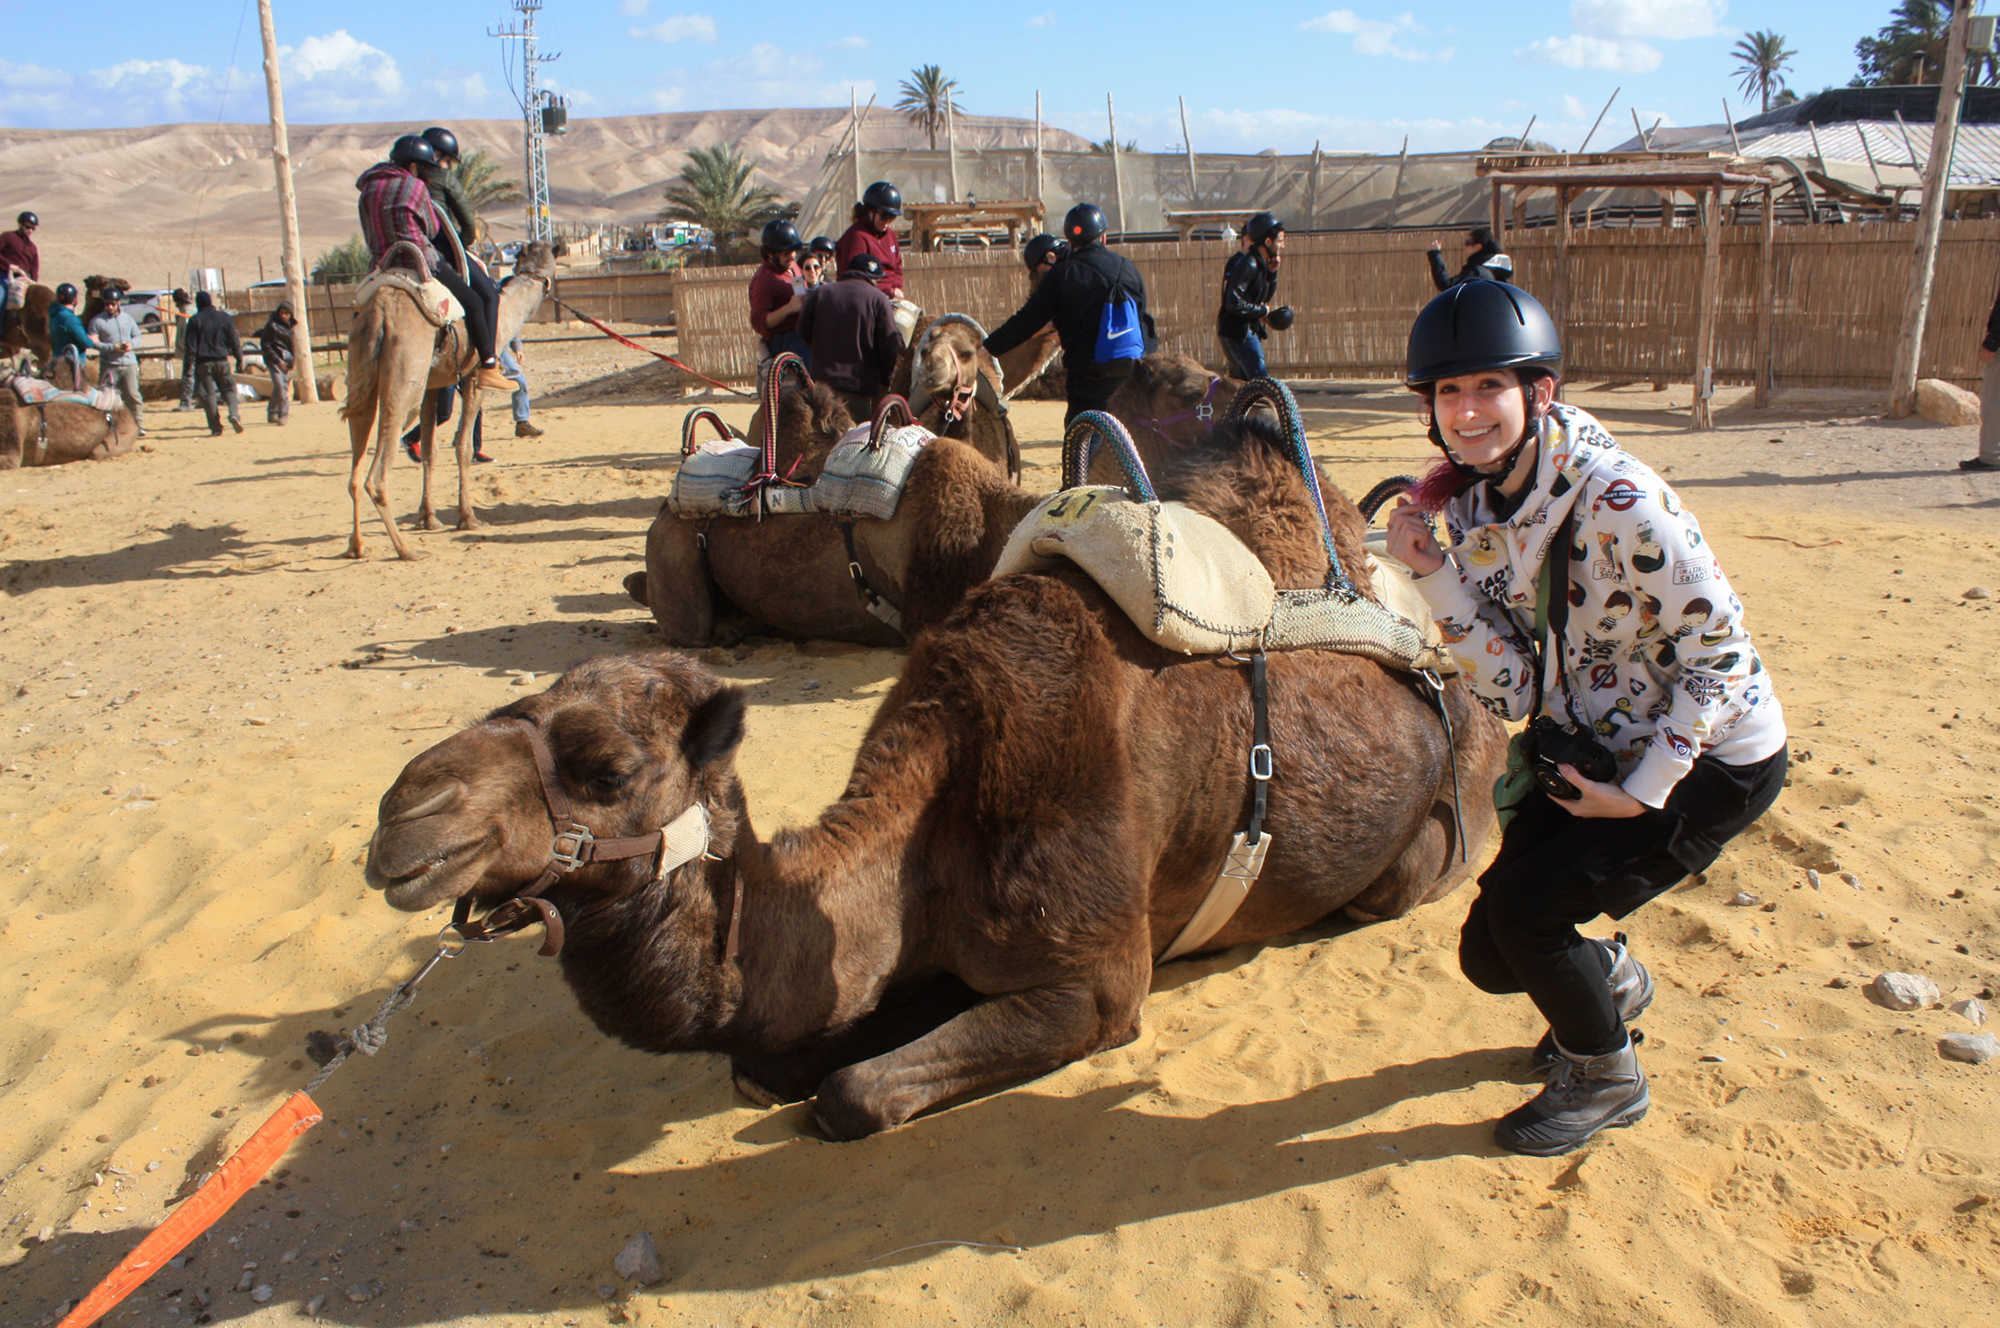 Geena Matuson with her camel on trip to Israel in December 2016 with Birthright Israel group Shorashim #Bus636. Photograph taken by Jessica Gallagher Steuver.